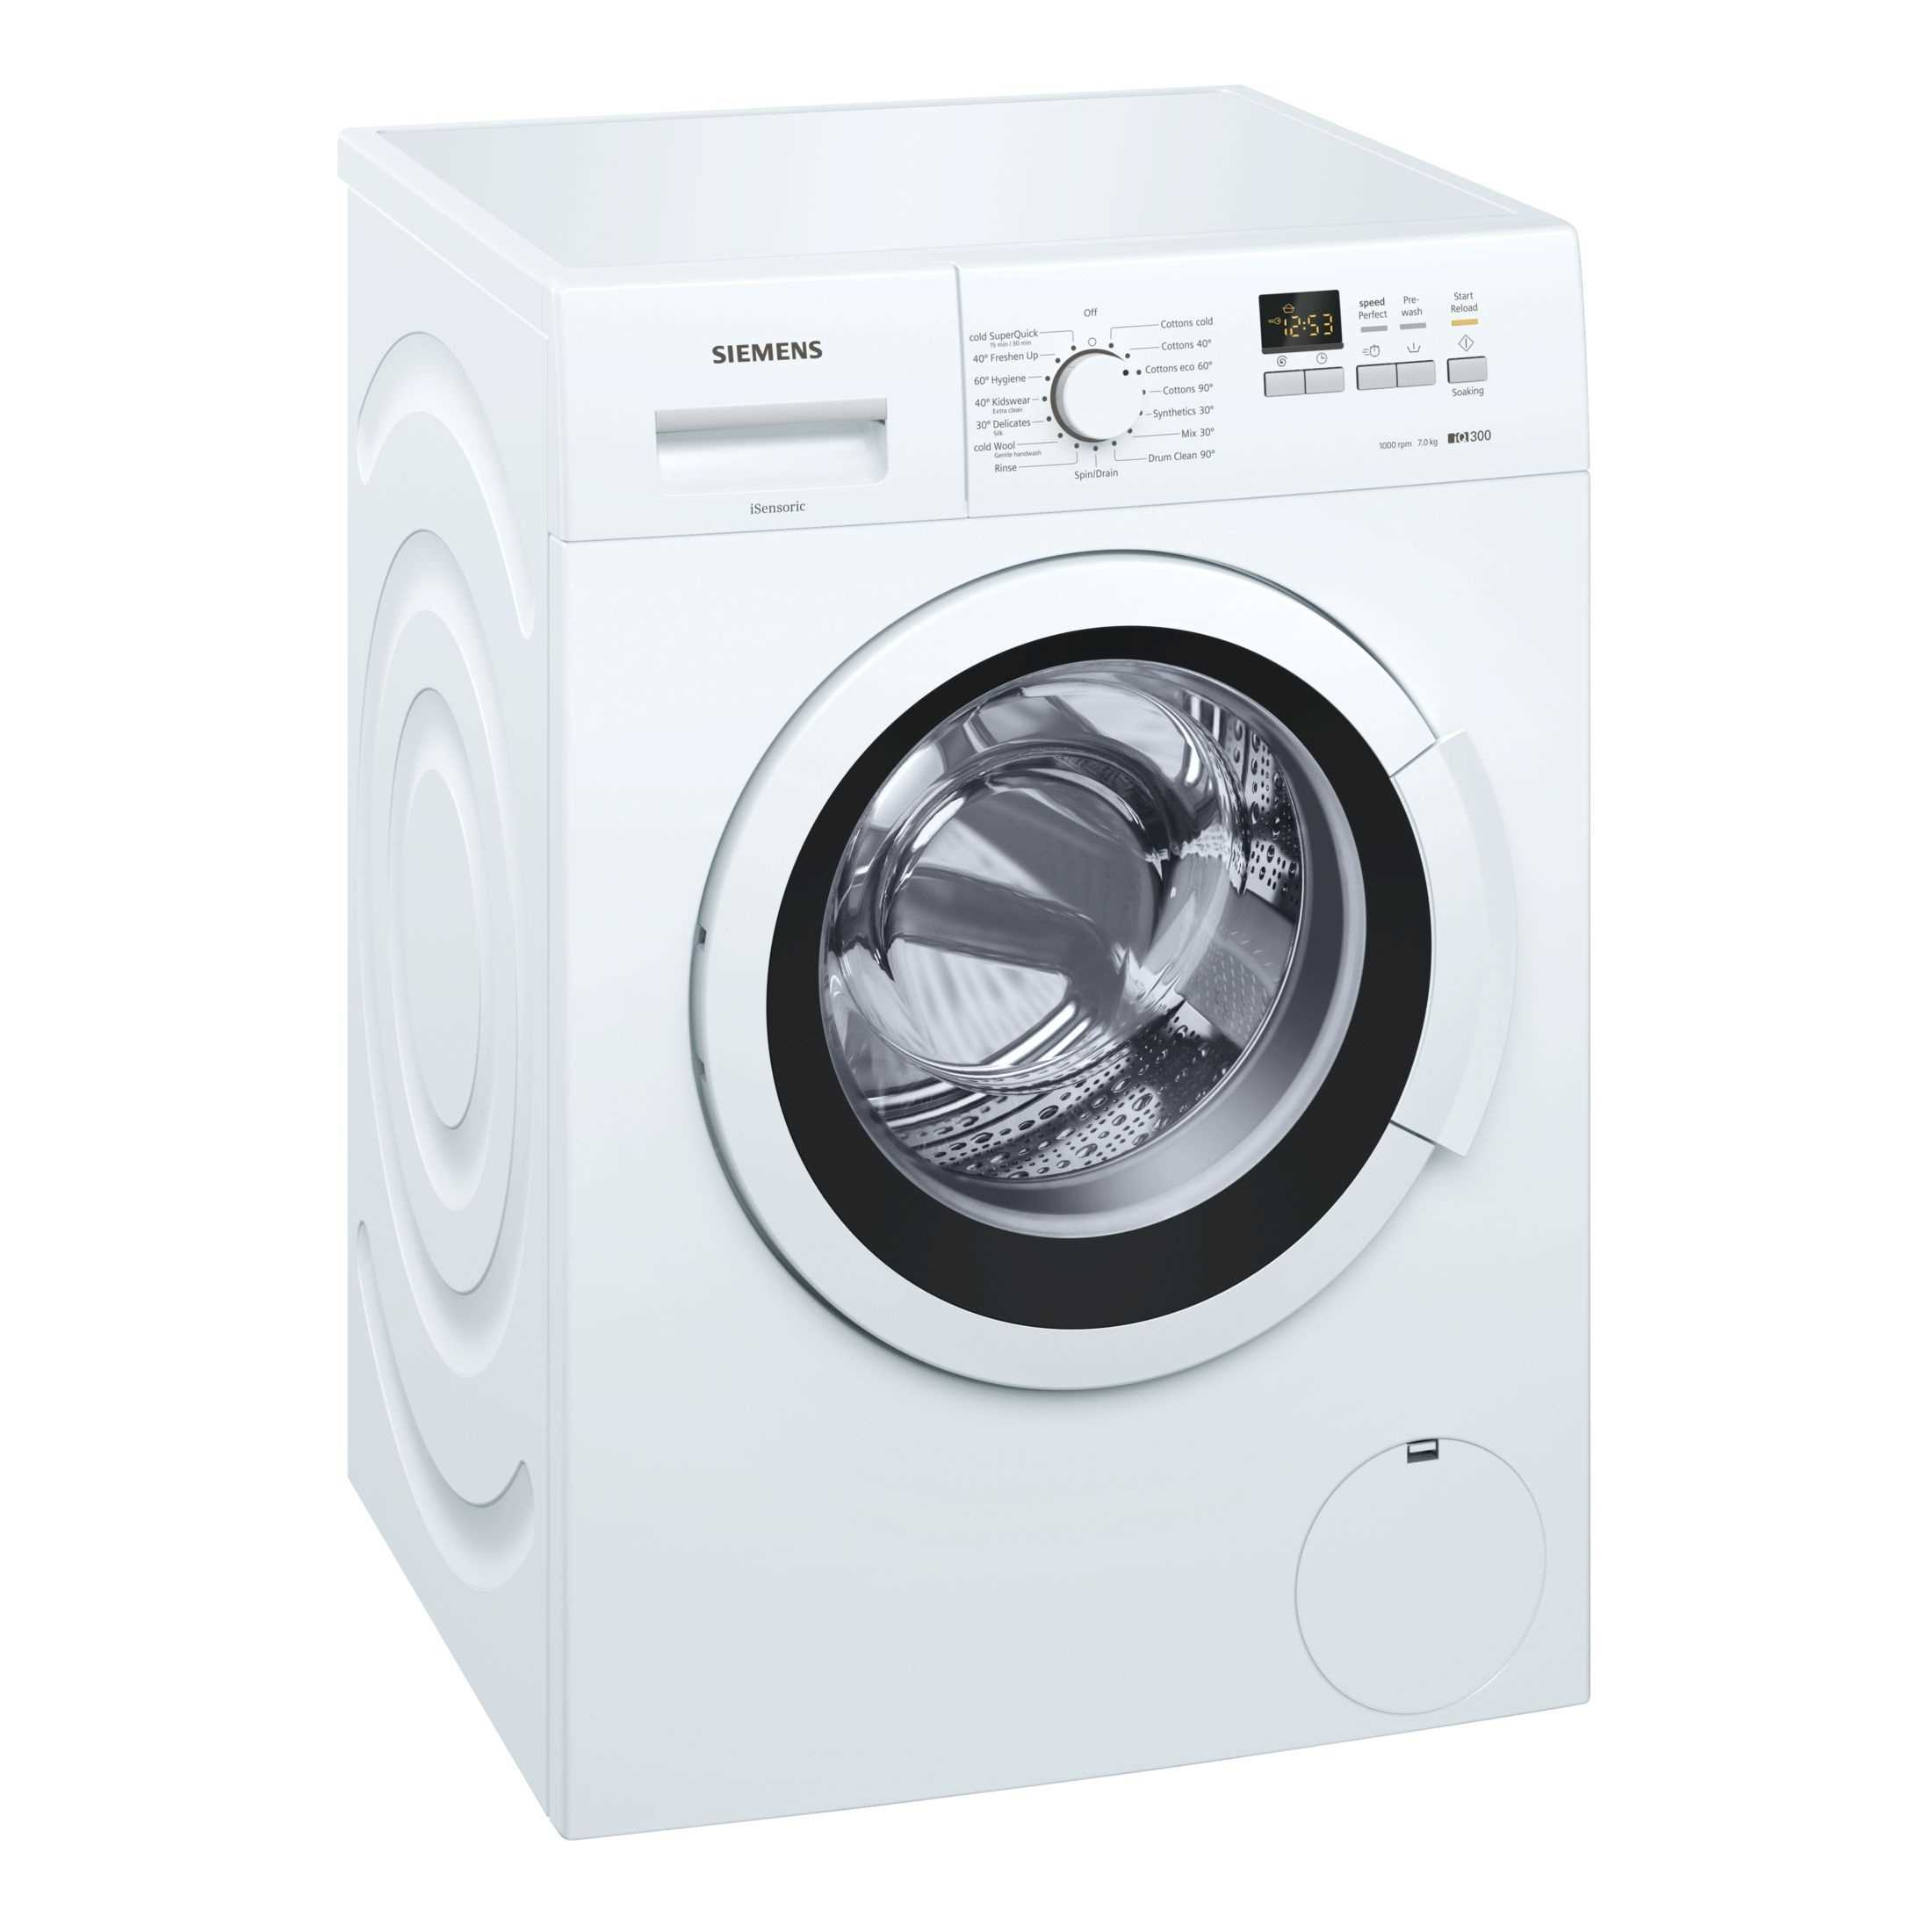 Siemens WM10K161IN iQ300 7 Kg Fully Automatic Front Loading Washing Machine